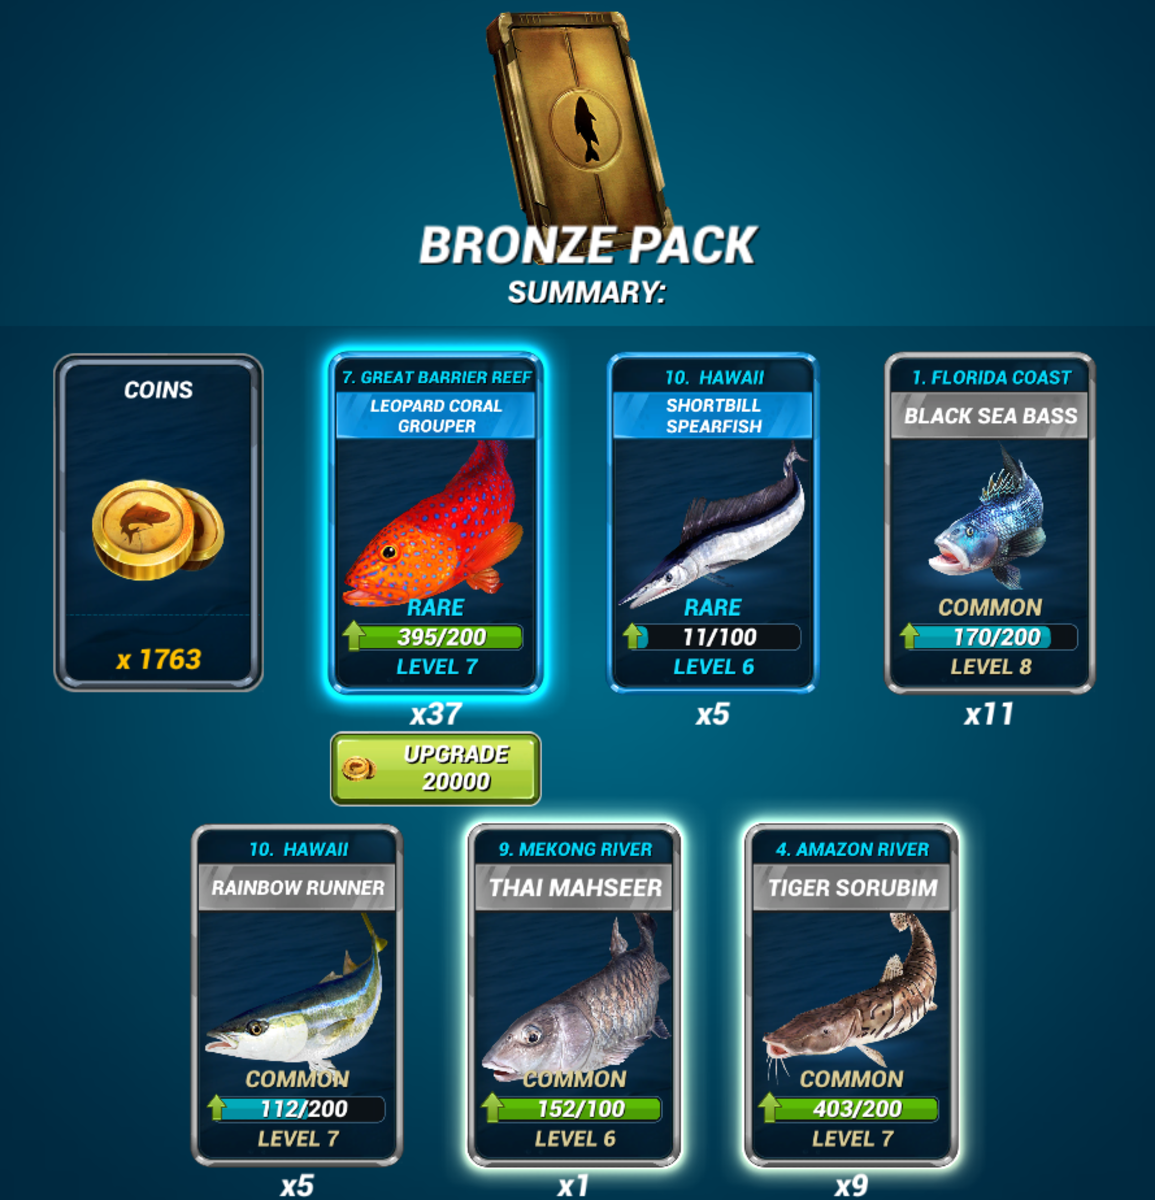 Example Bronze Pack